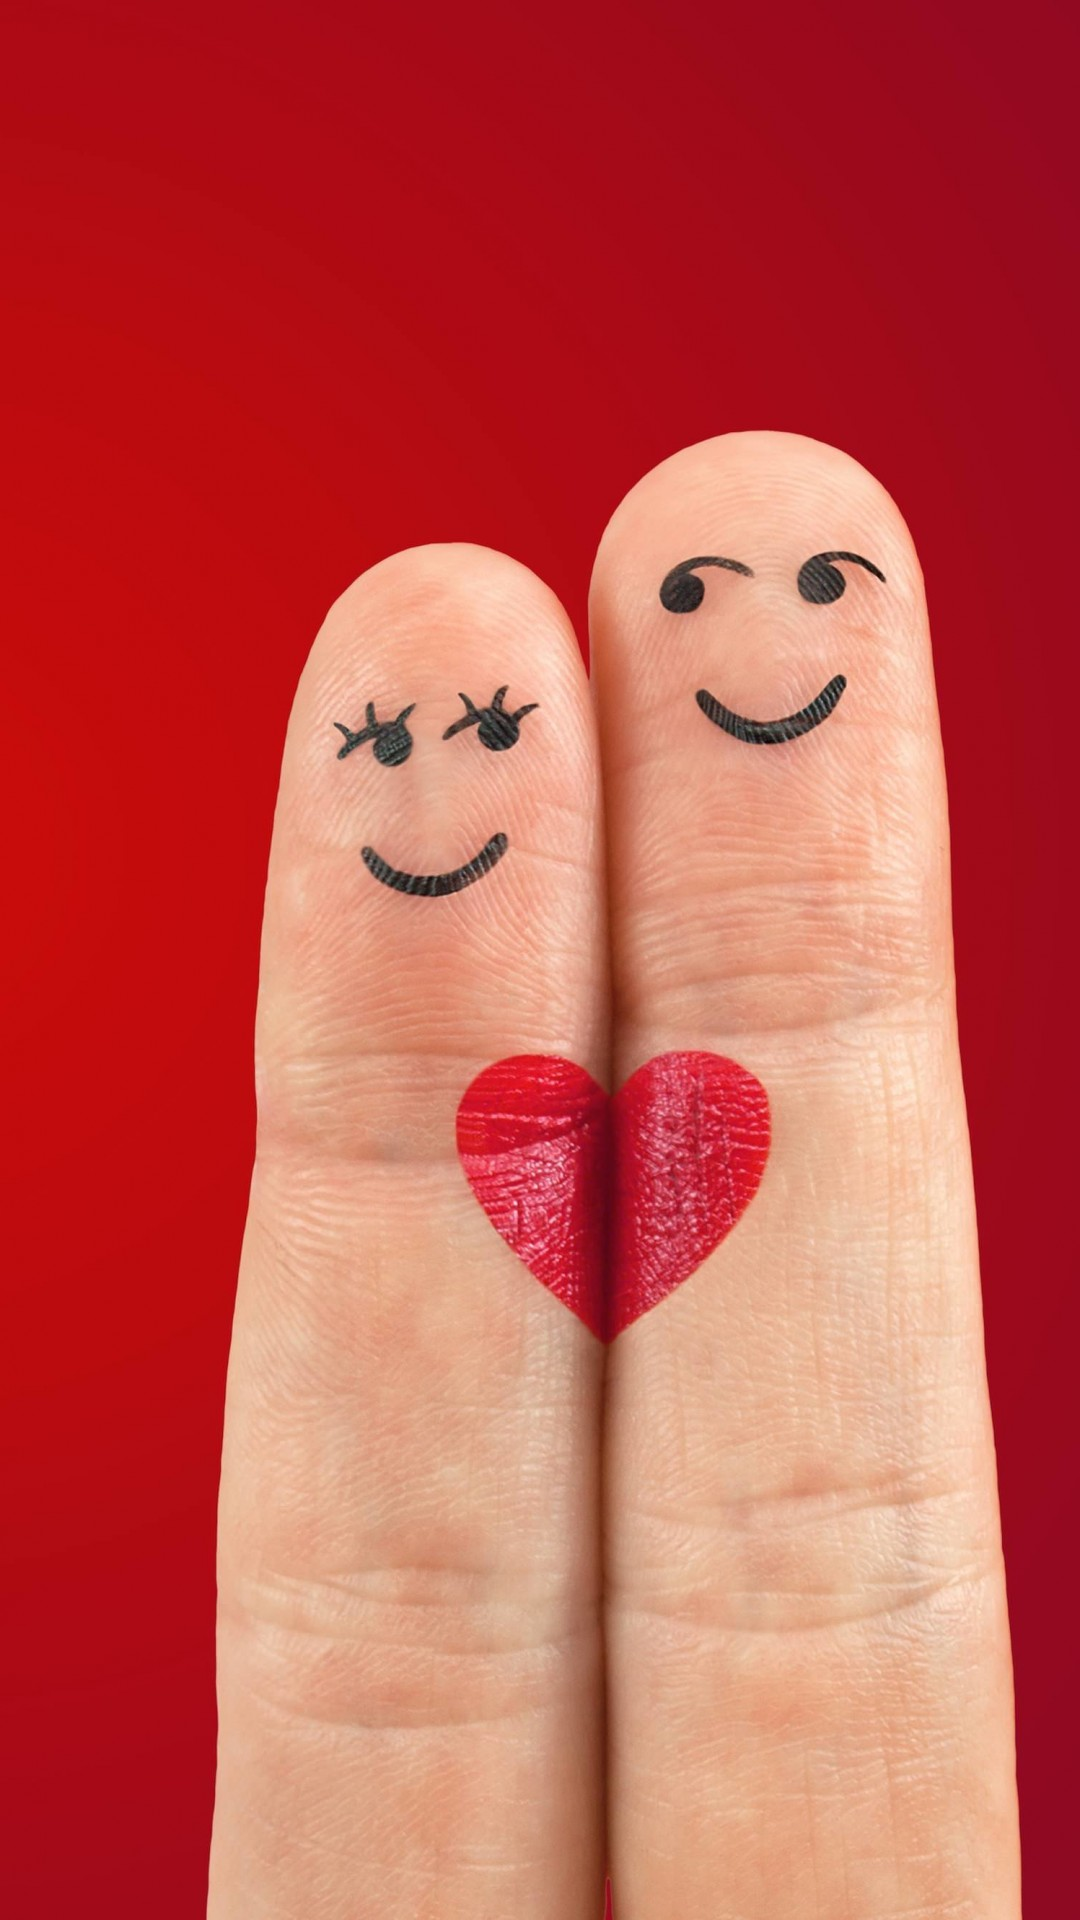 Fingers in Love Wallpaper for SAMSUNG Galaxy S4